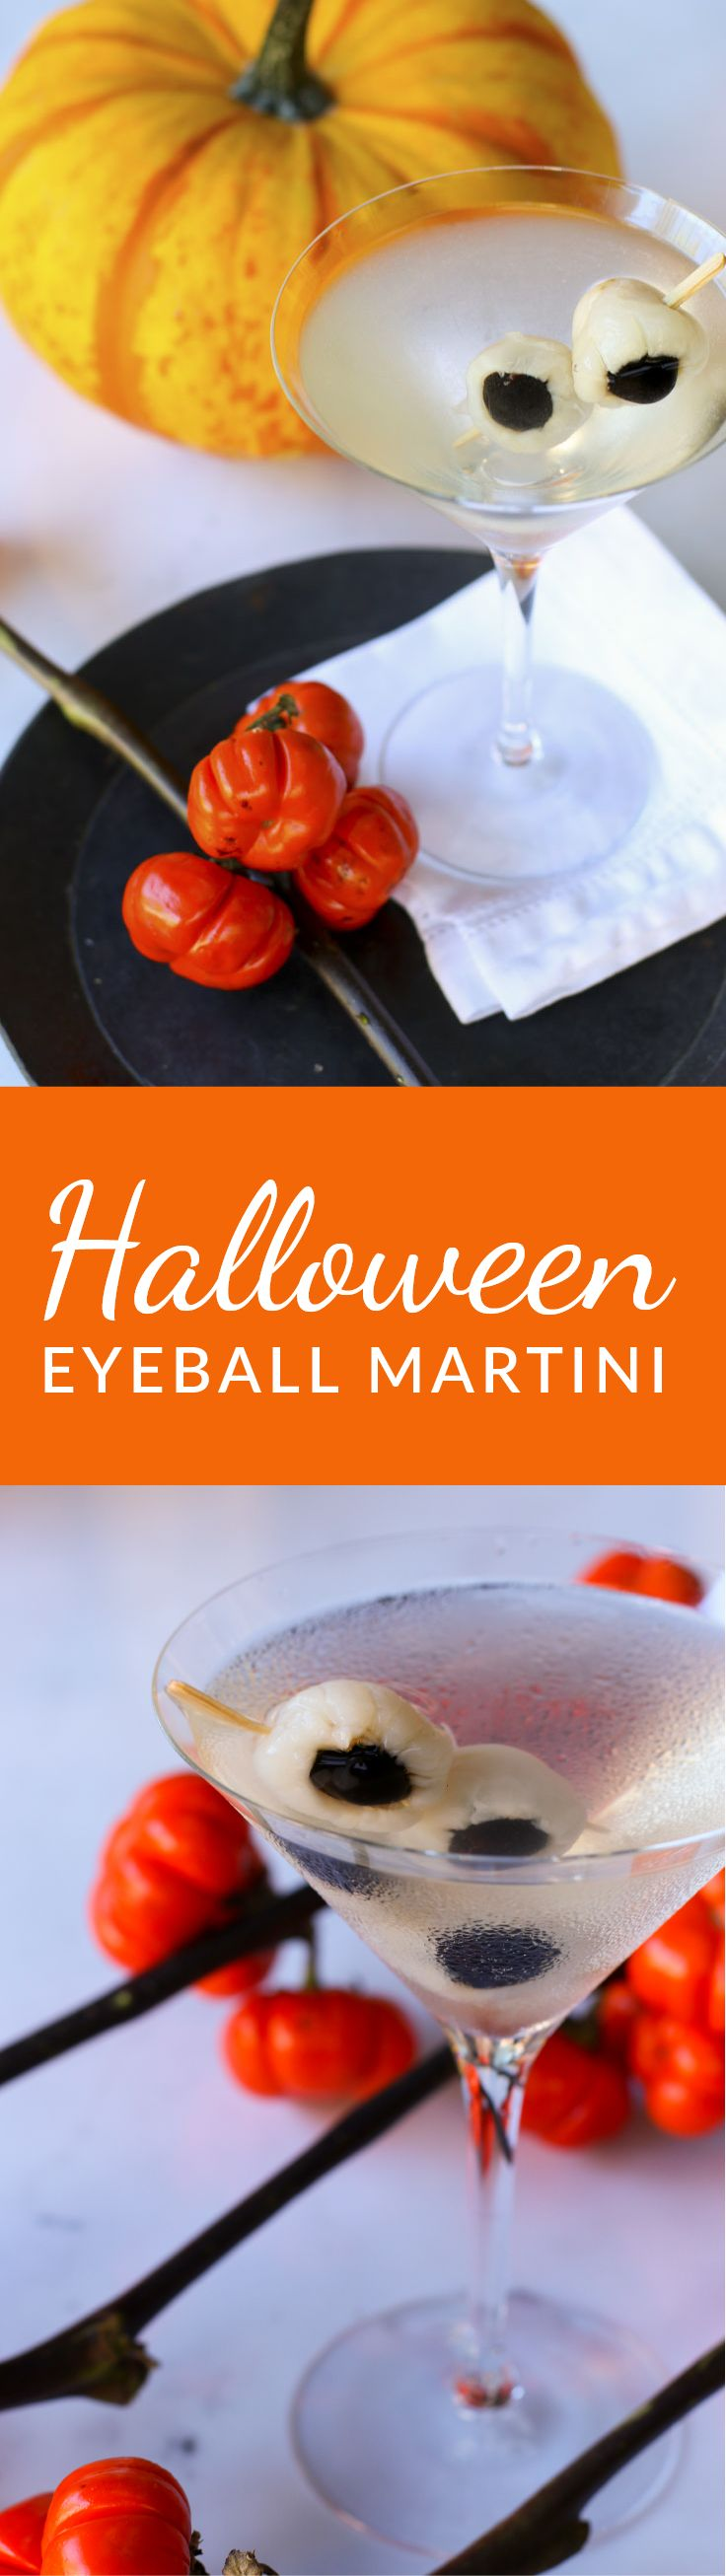 Spooky and tasty, this Halloween cocktail is made with delicious ingredients: Vodka, St. Germain, lemon, lychees and Luxardo maraschino cherries.